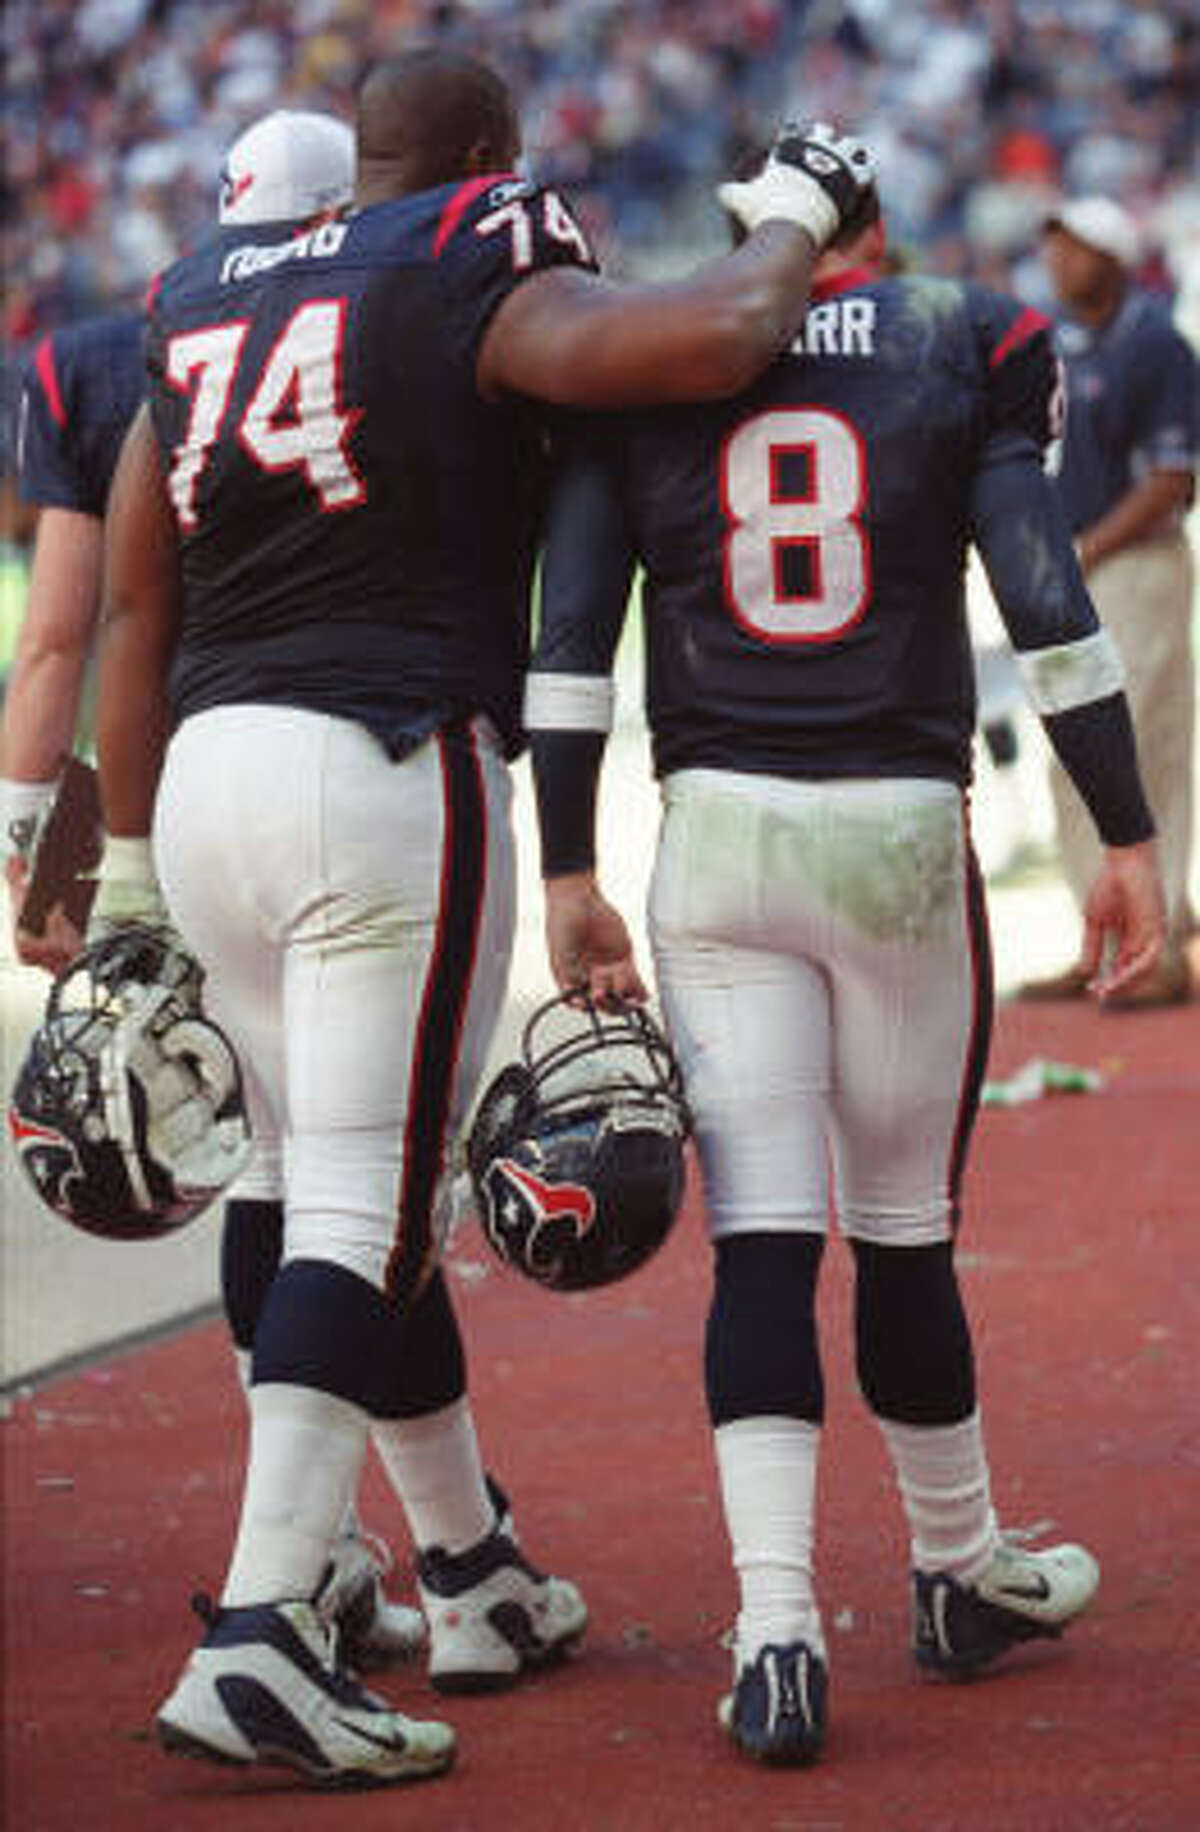 Nov. 17, 2002: Jaguars 24, Texans 21 The Texans fell behind 17-7 and could never catch up to drop their third straight.